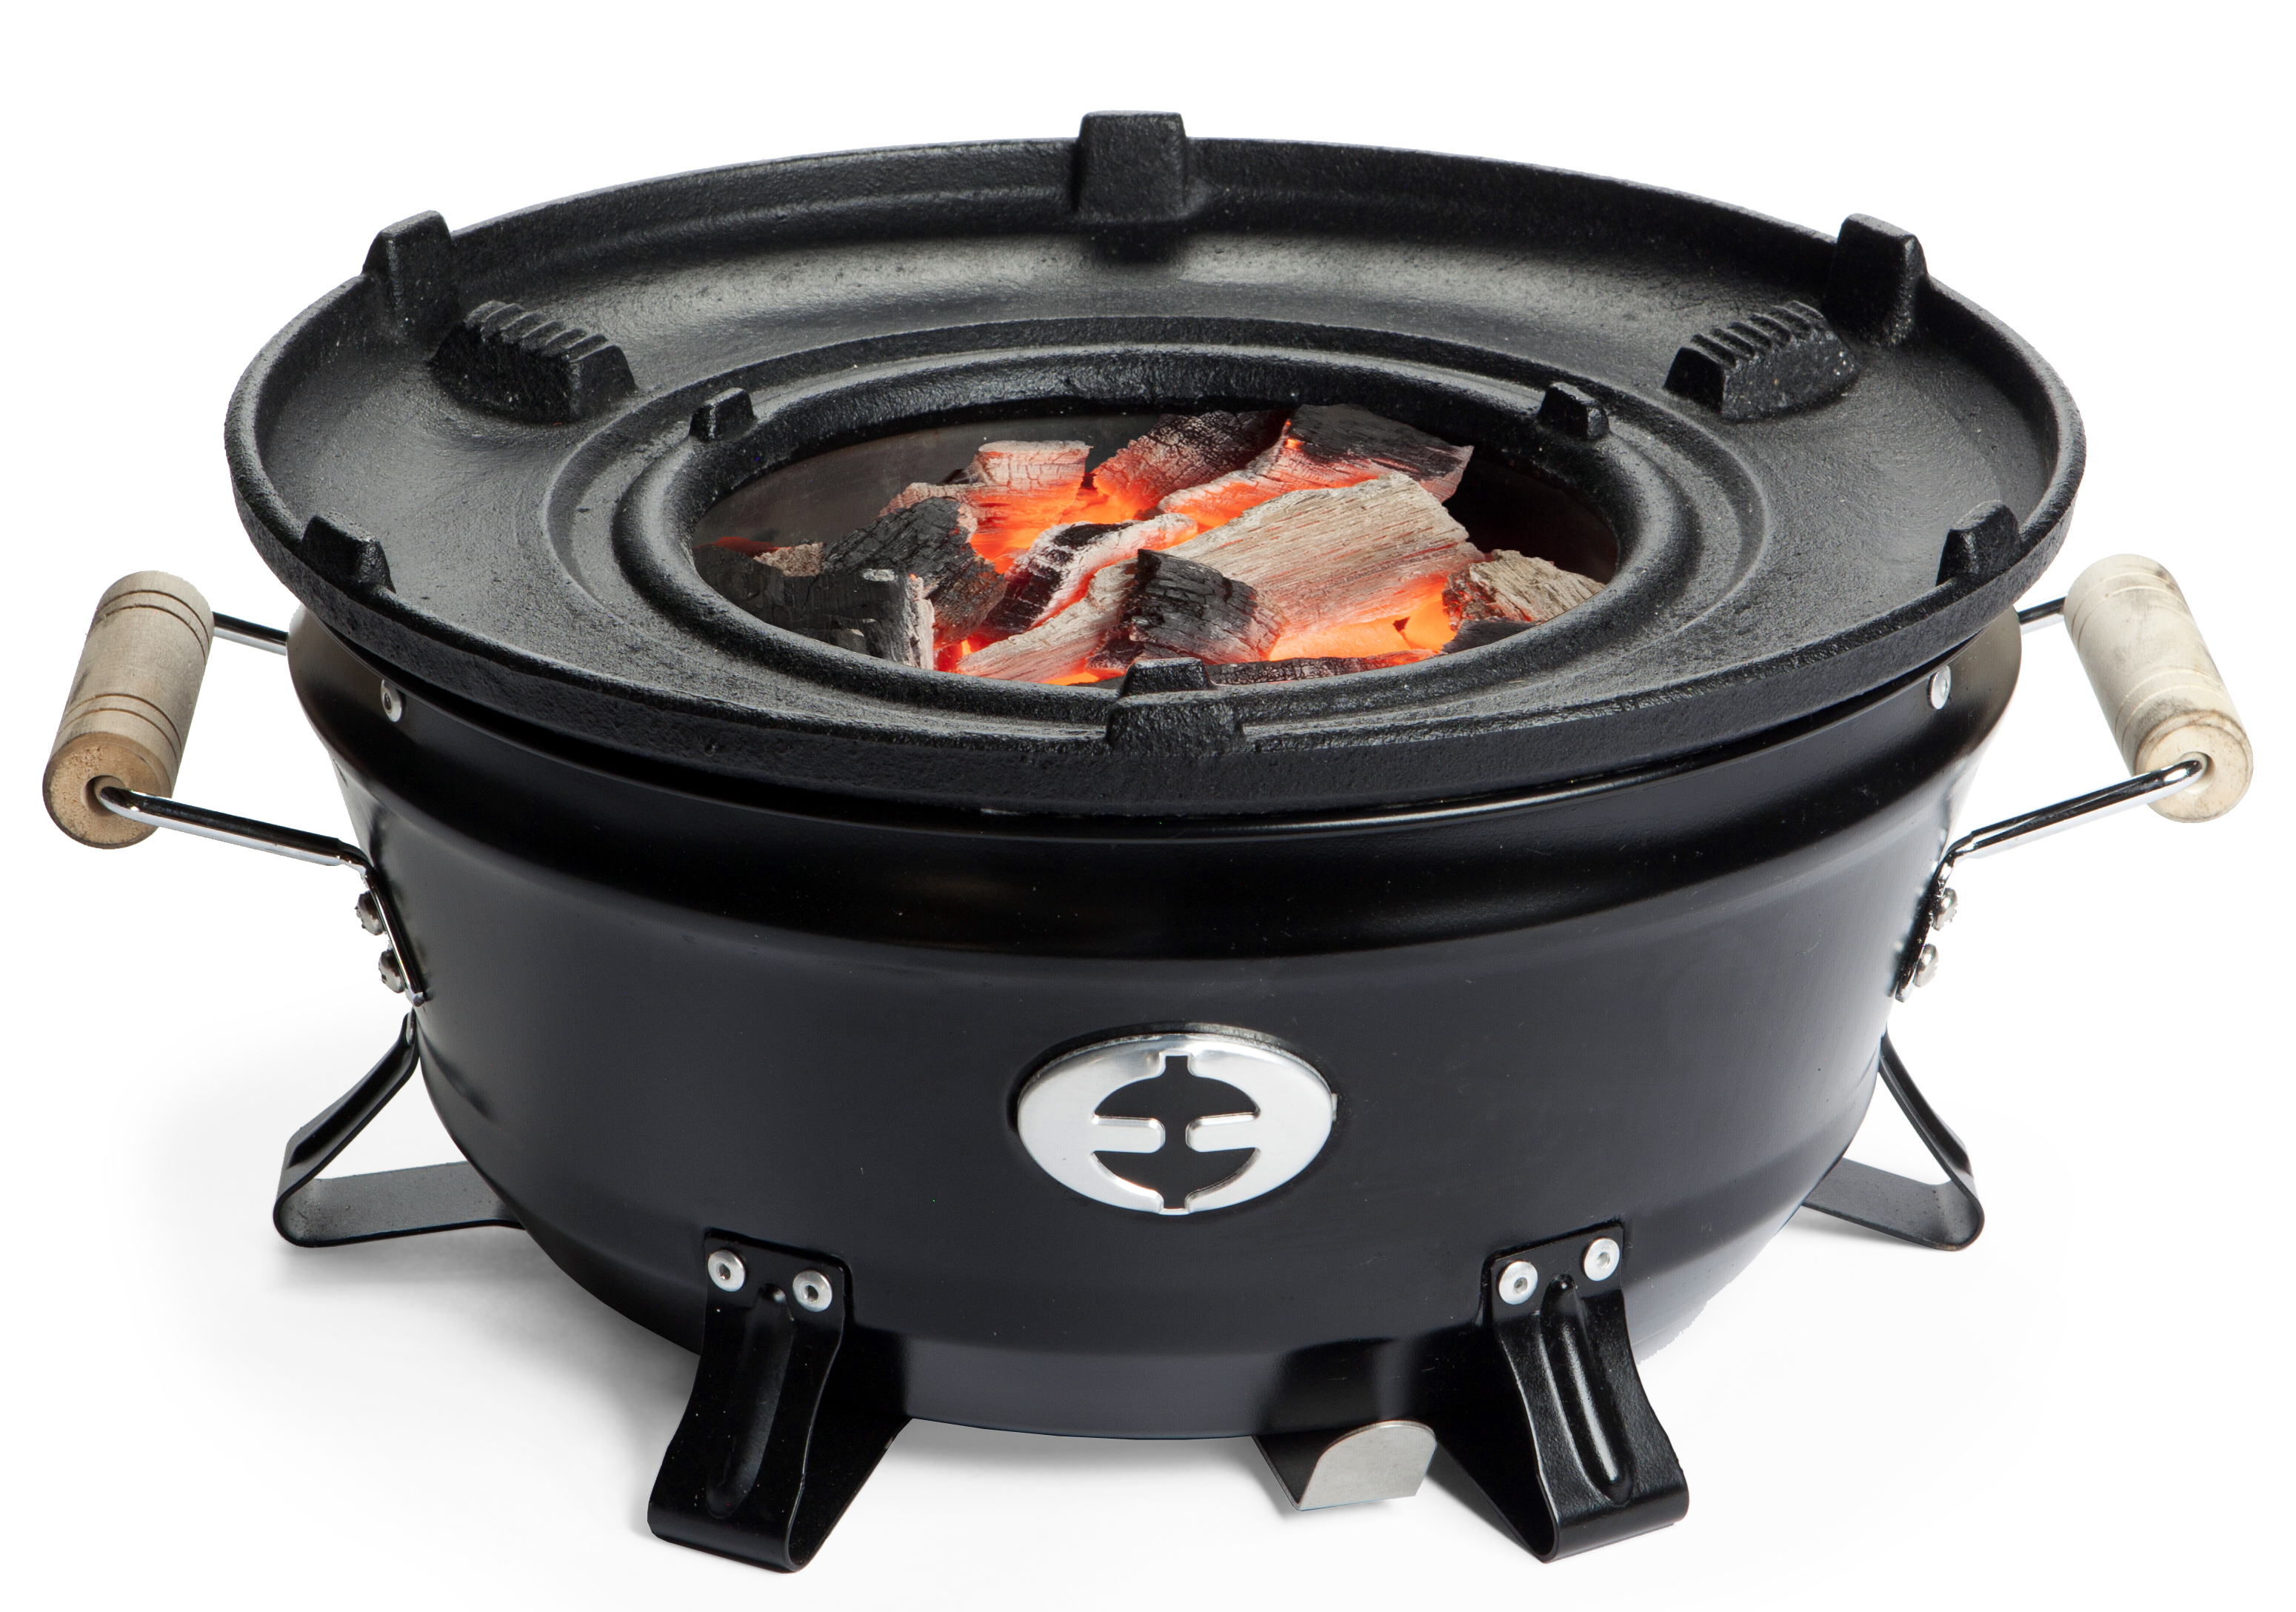 GoGrill Saver Charcoal Cookstove